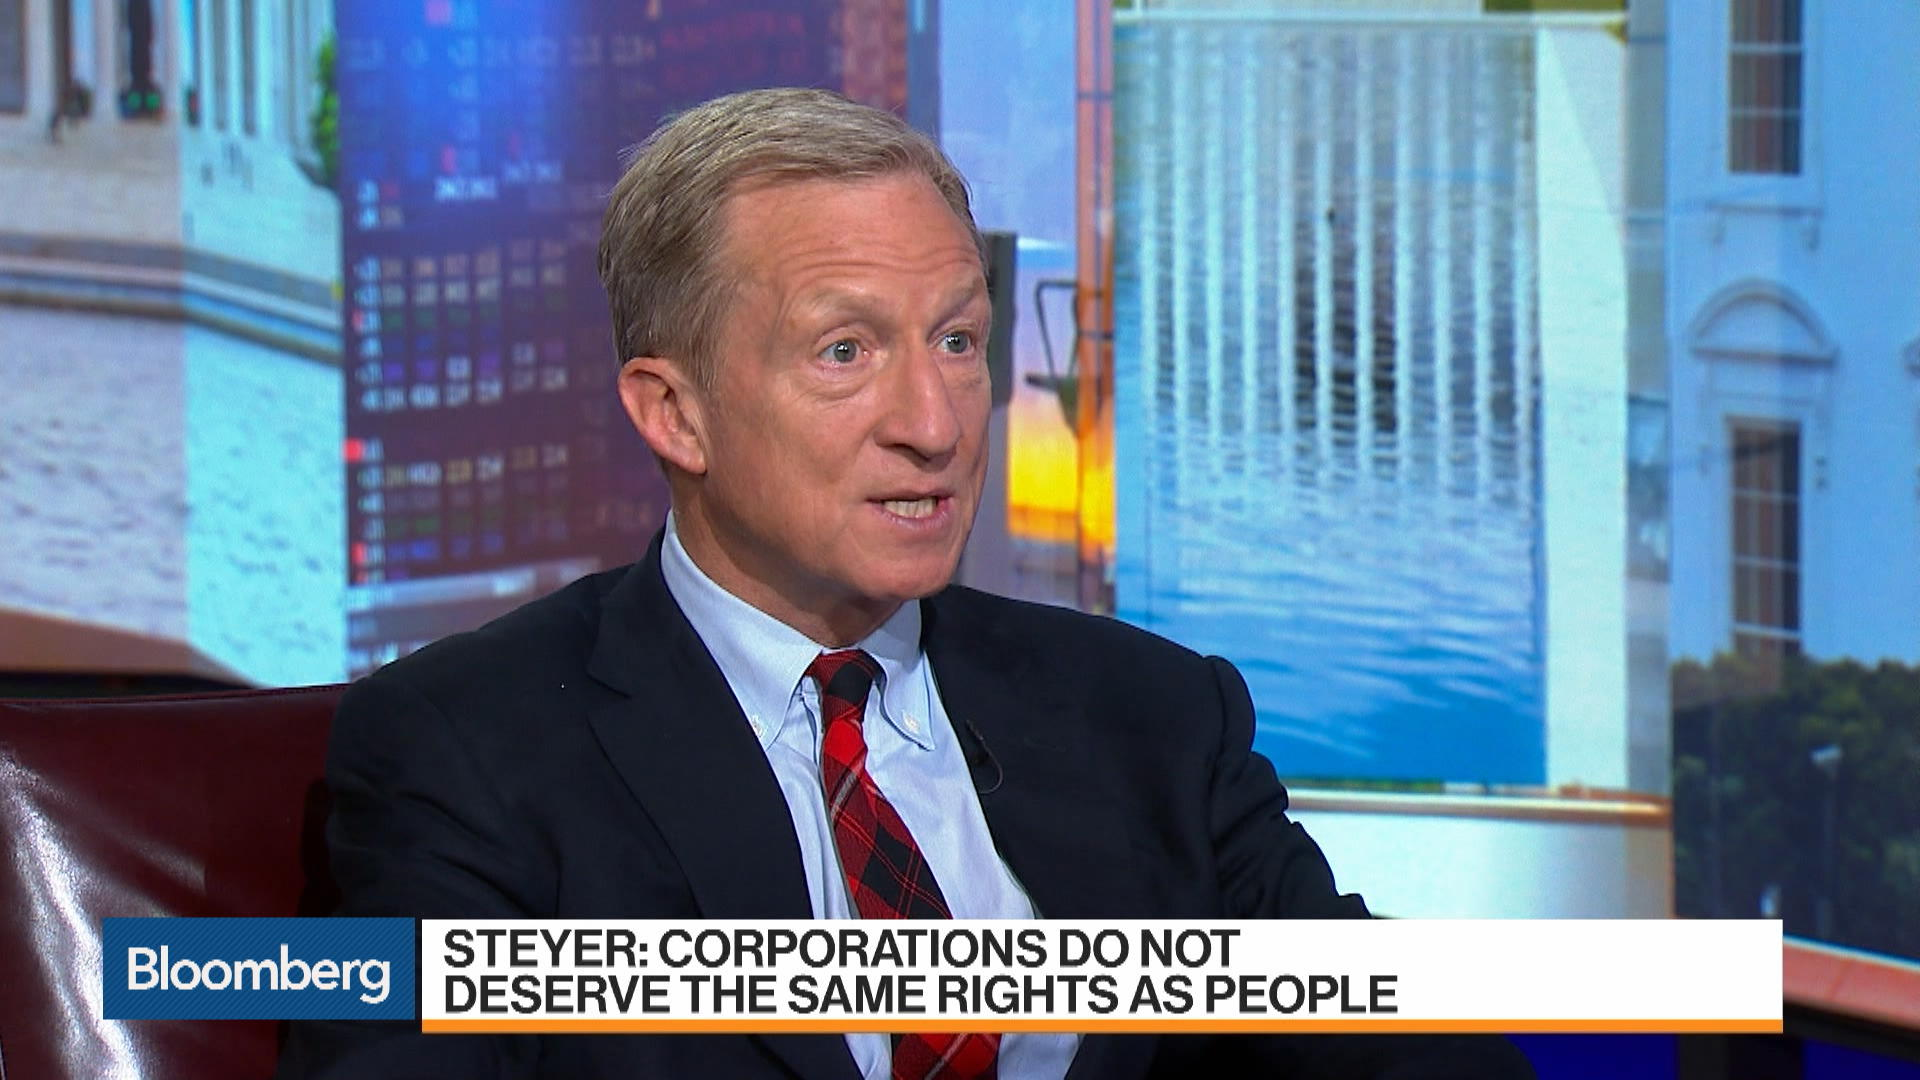 Democratic Candidate Steyer Says Brexit Was a Terrible Outcome